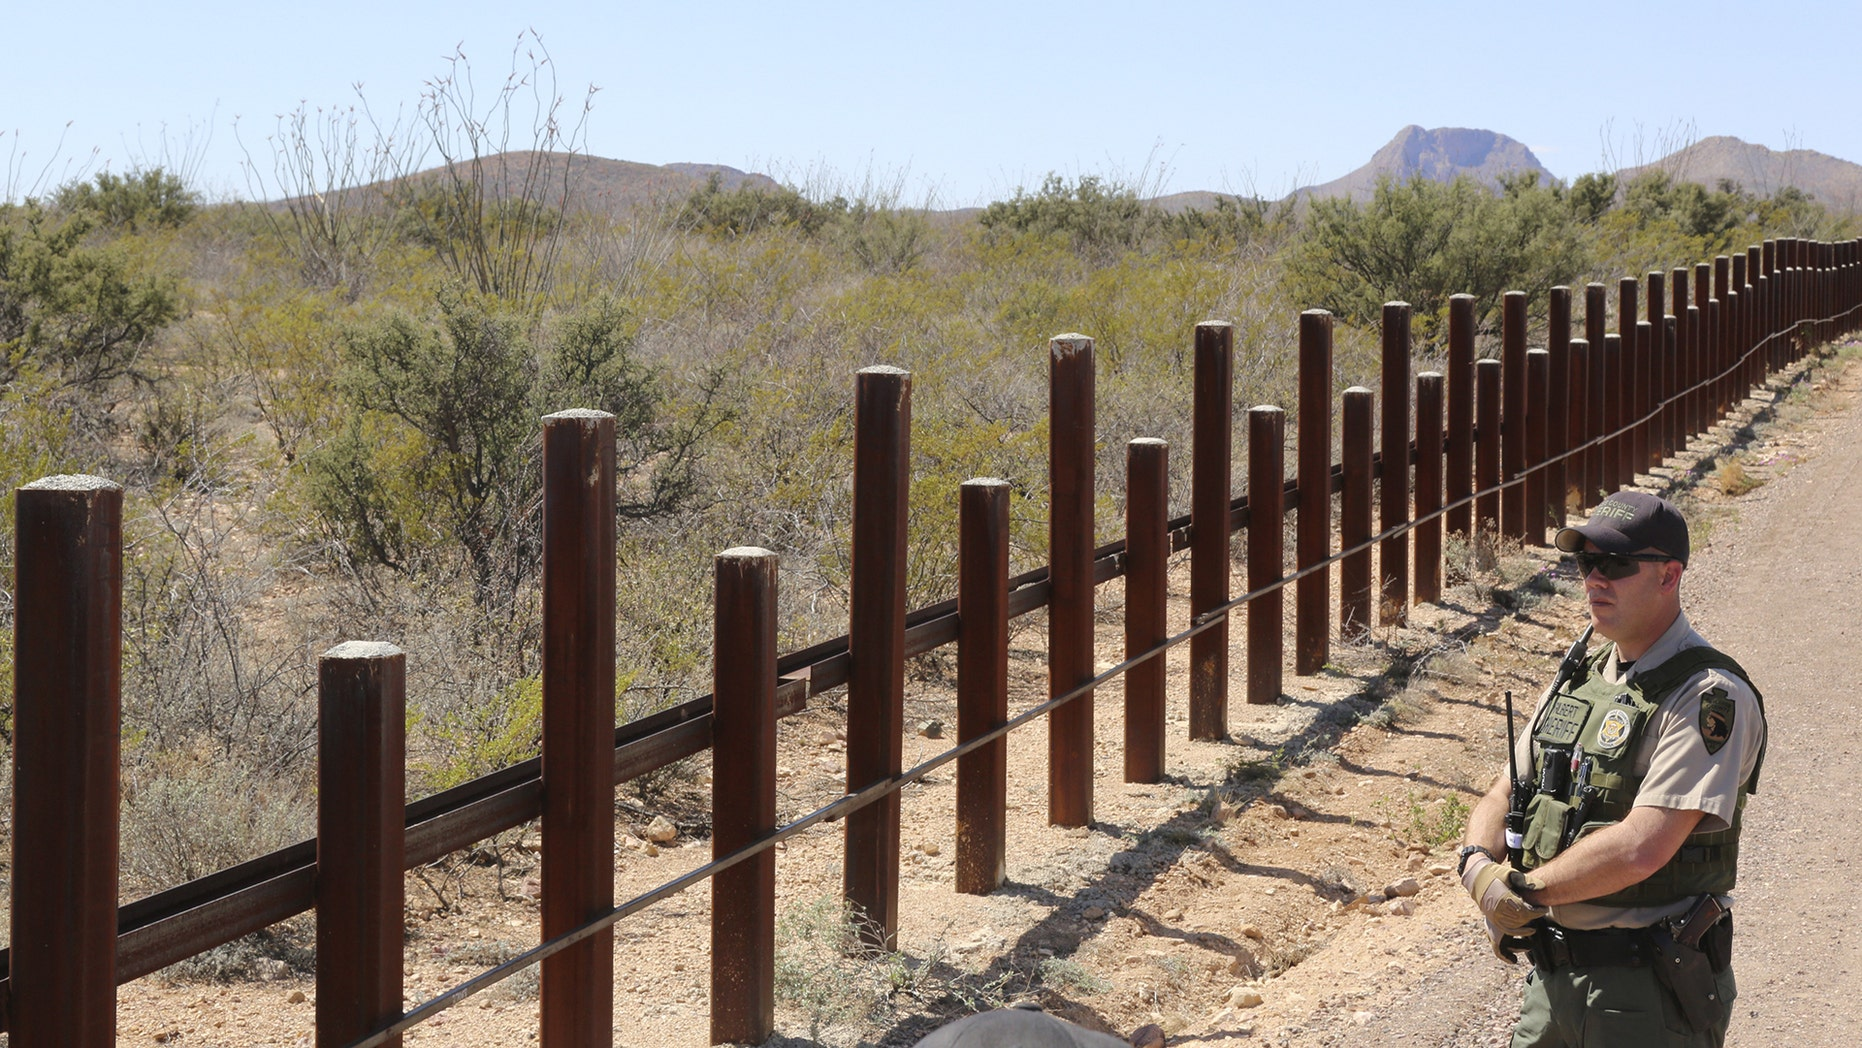 Border fence between the United States and Mexico near Douglas, Arizona March 18, 2016.